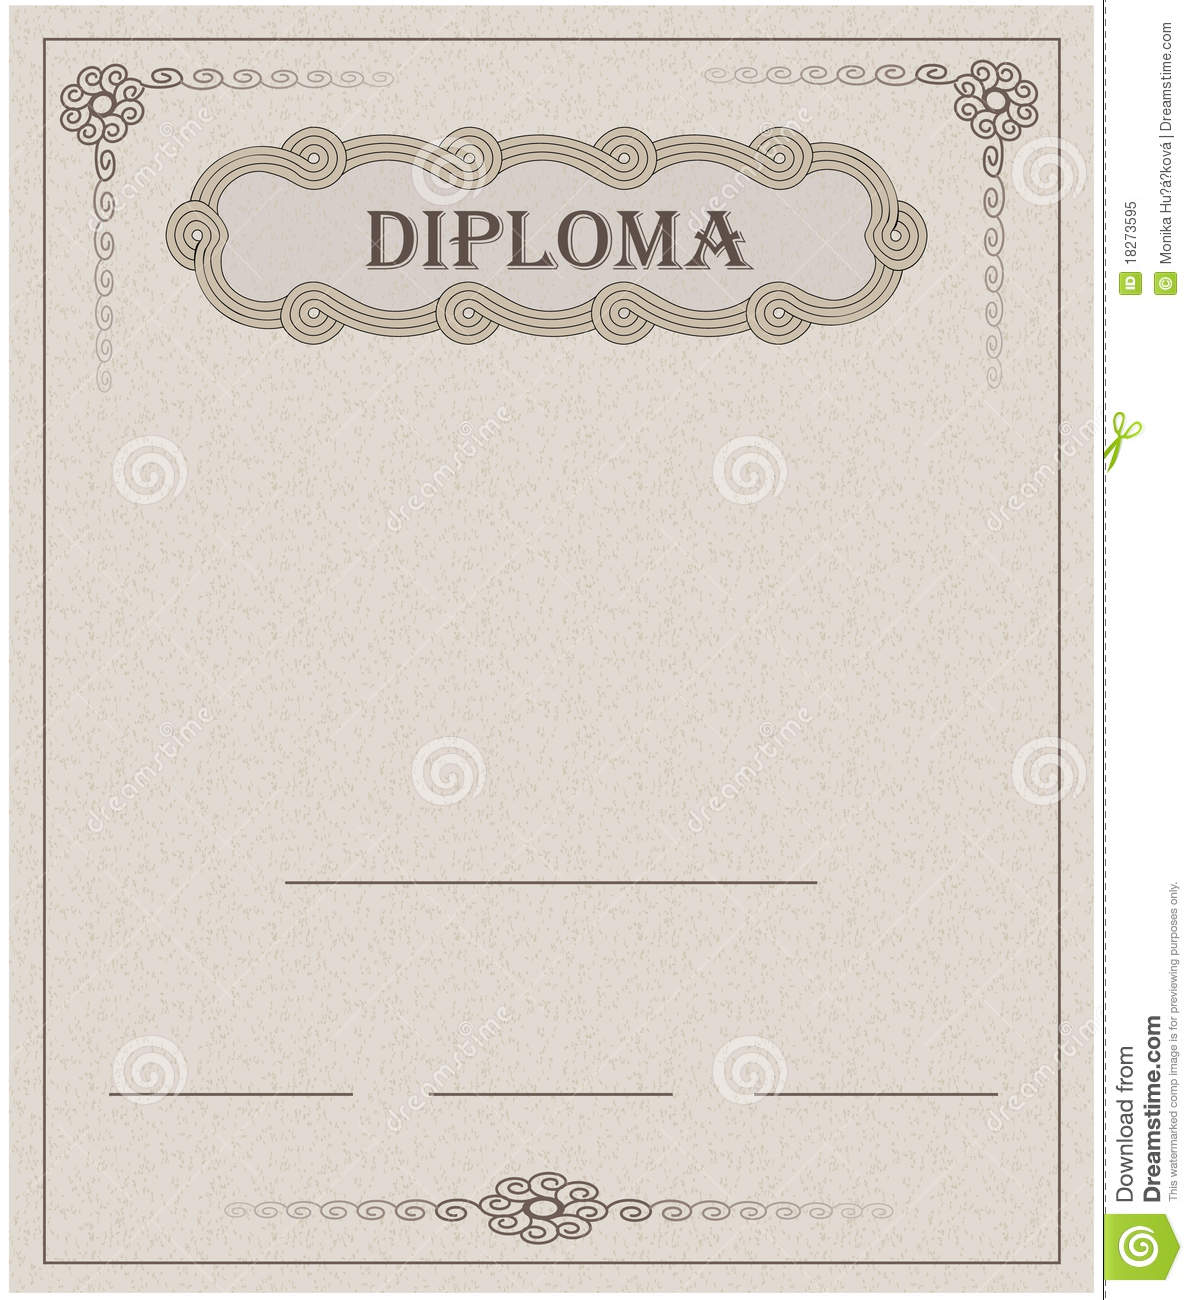 Diploma Paper Template Card Royalty Free Stock Photo ...